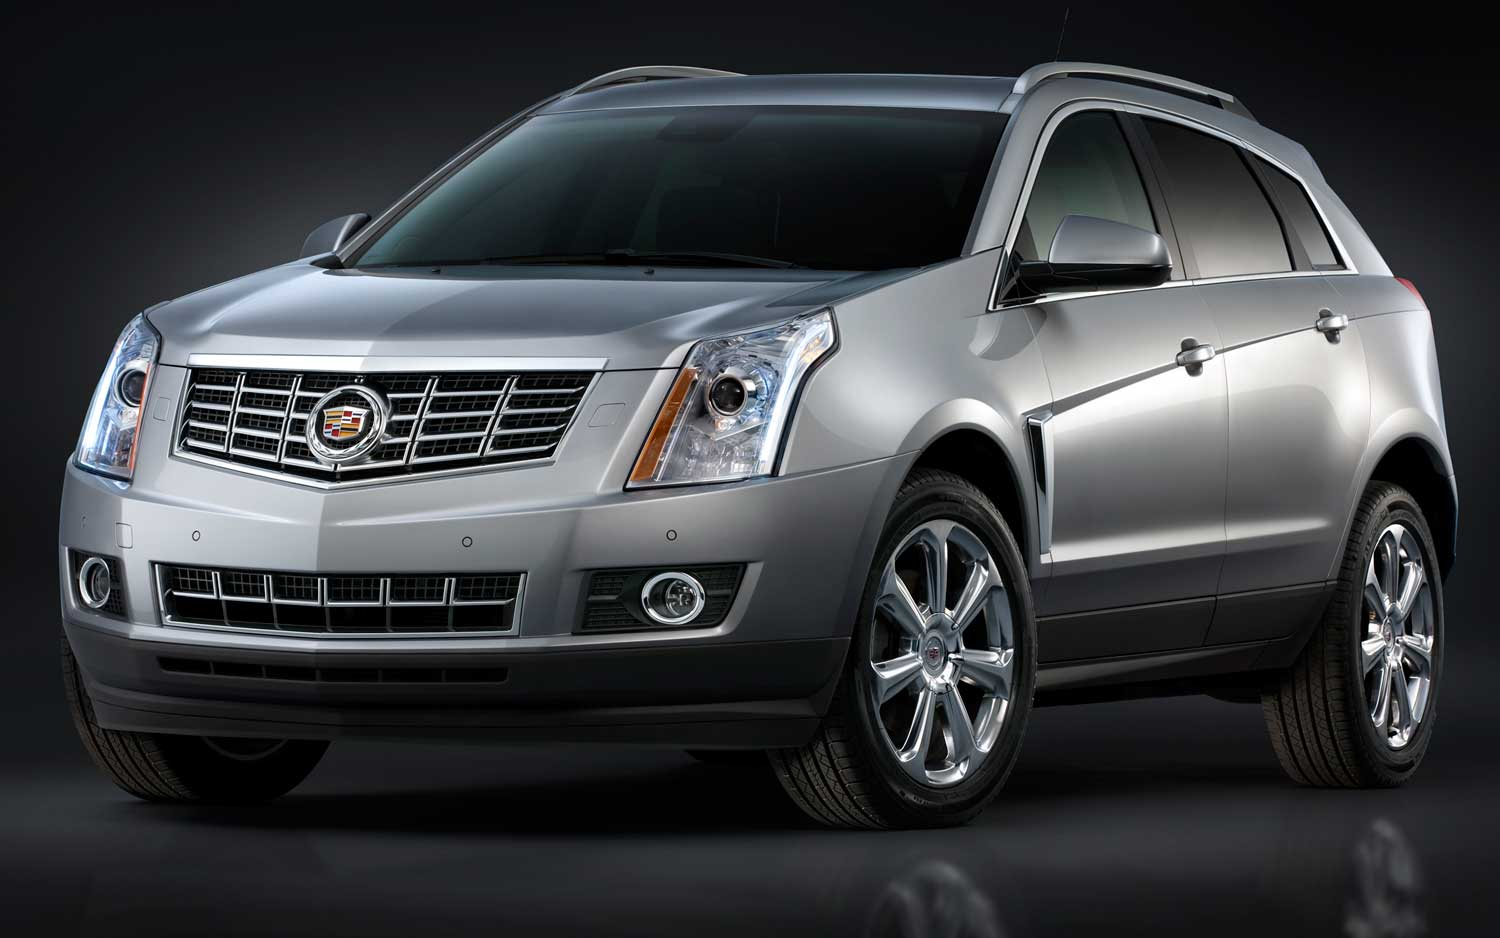 2013 Cadillac SRX Front View Buick La Crosse Recalled for Sport Mode Issue Wallpaper Download